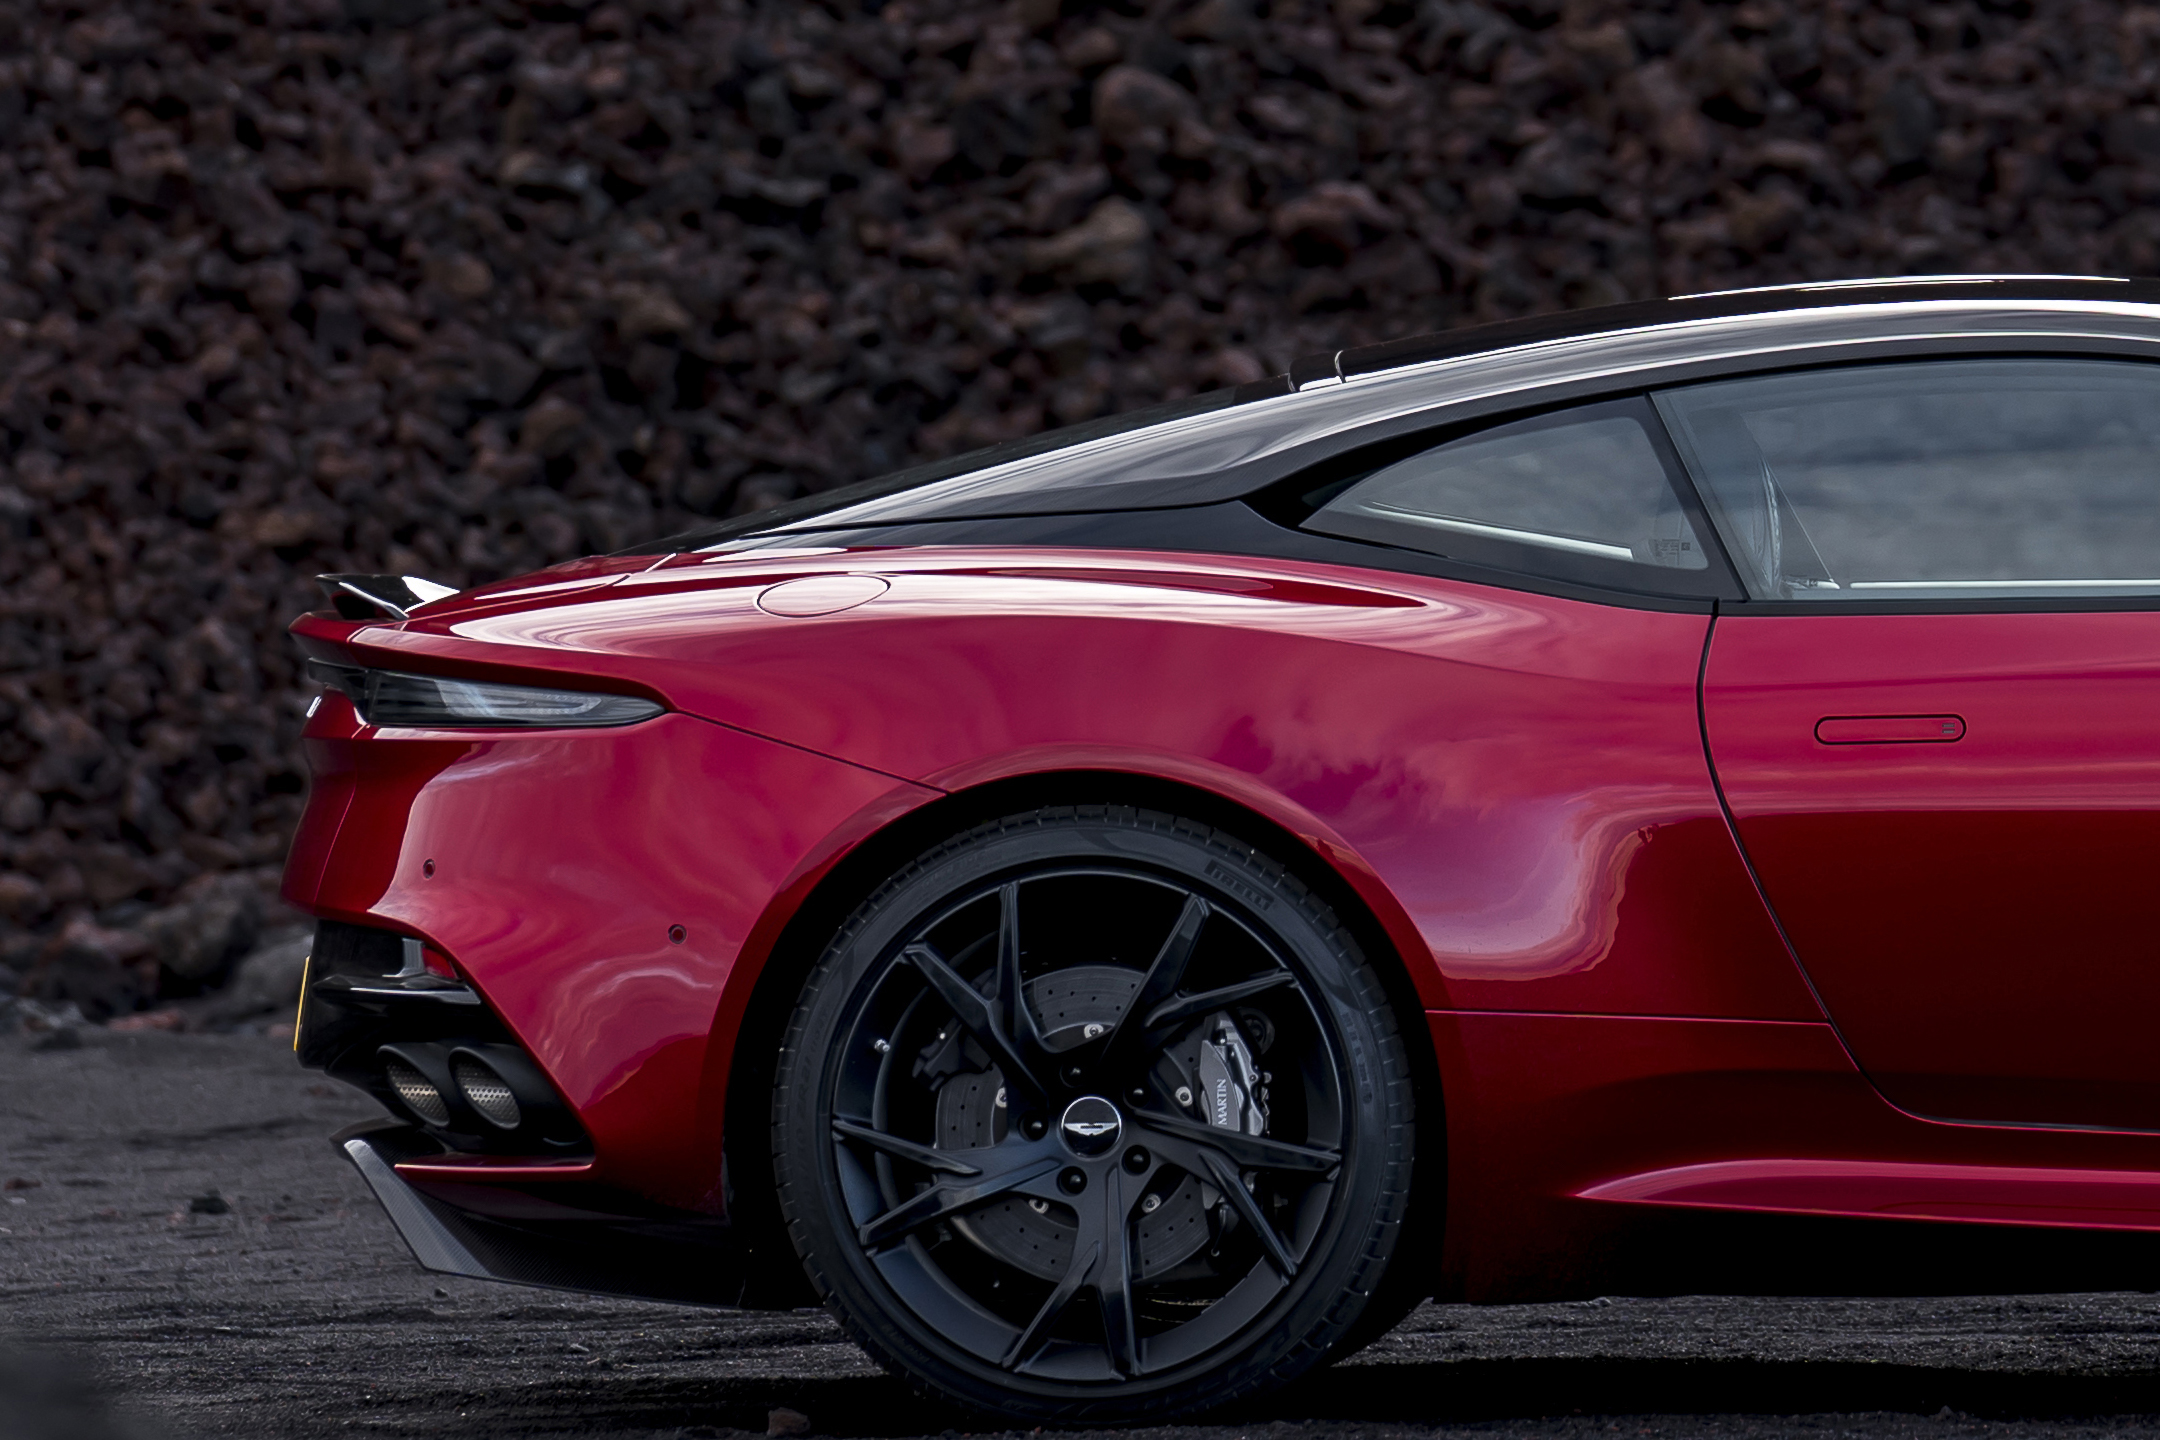 Aston Martin DBS Superleggera - 2018 - rear wheel